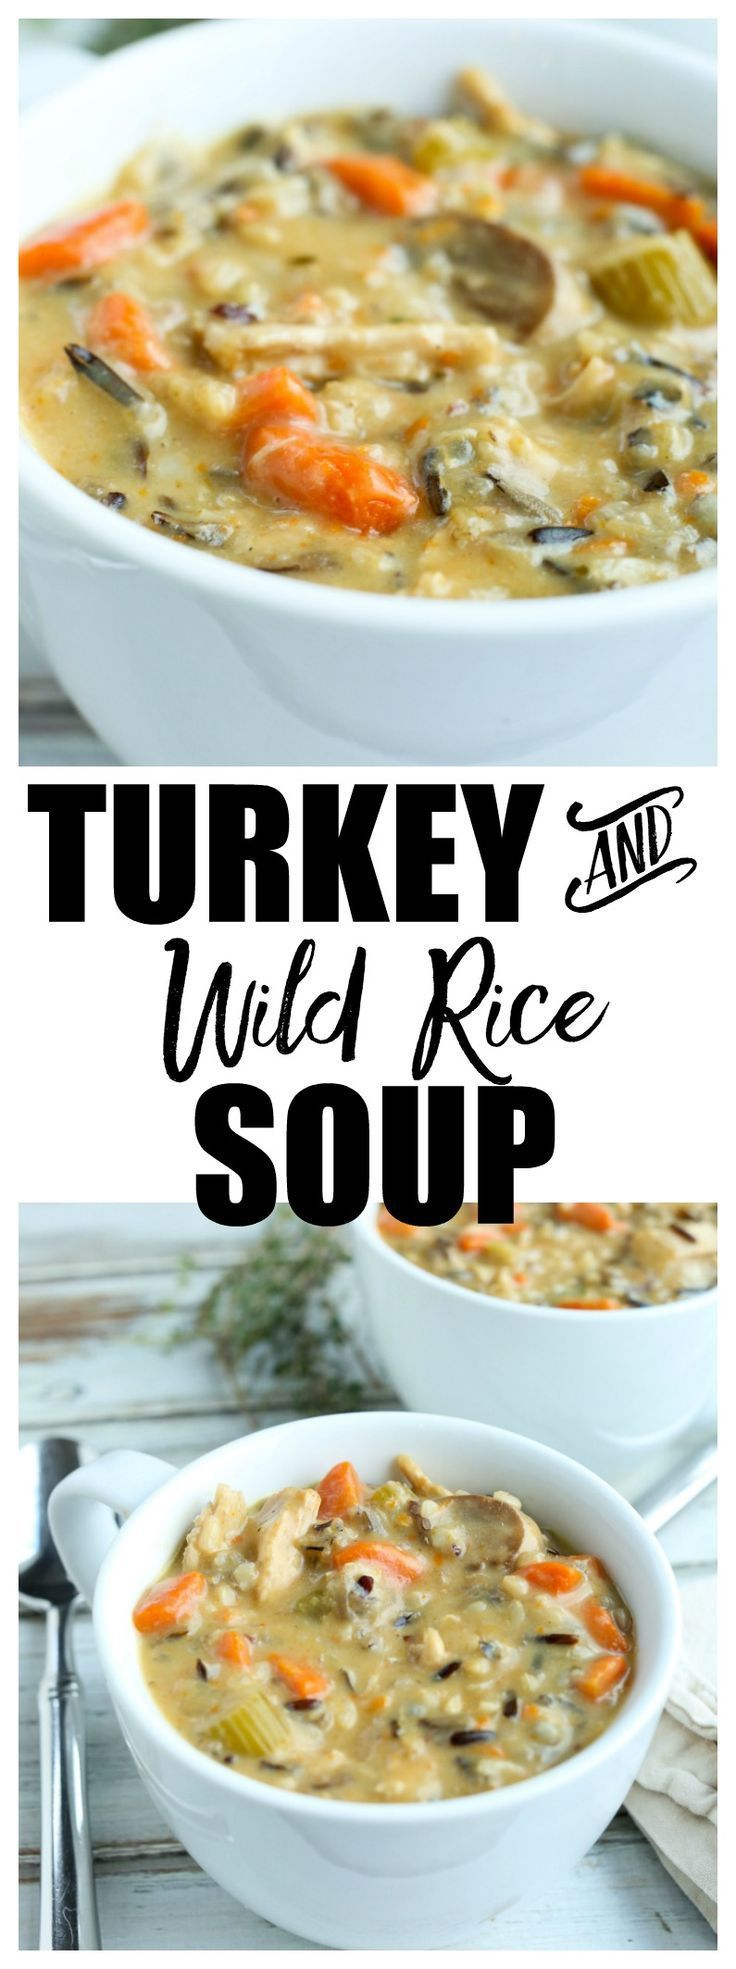 Turkey and Wild Rice Soup Recipe. This is a perfect, healthy recipe for leftover turkey from Thanksgiving or Christmas. Guess what?! This also works with leftover chicken! It's a healthy soup that everyone loves.